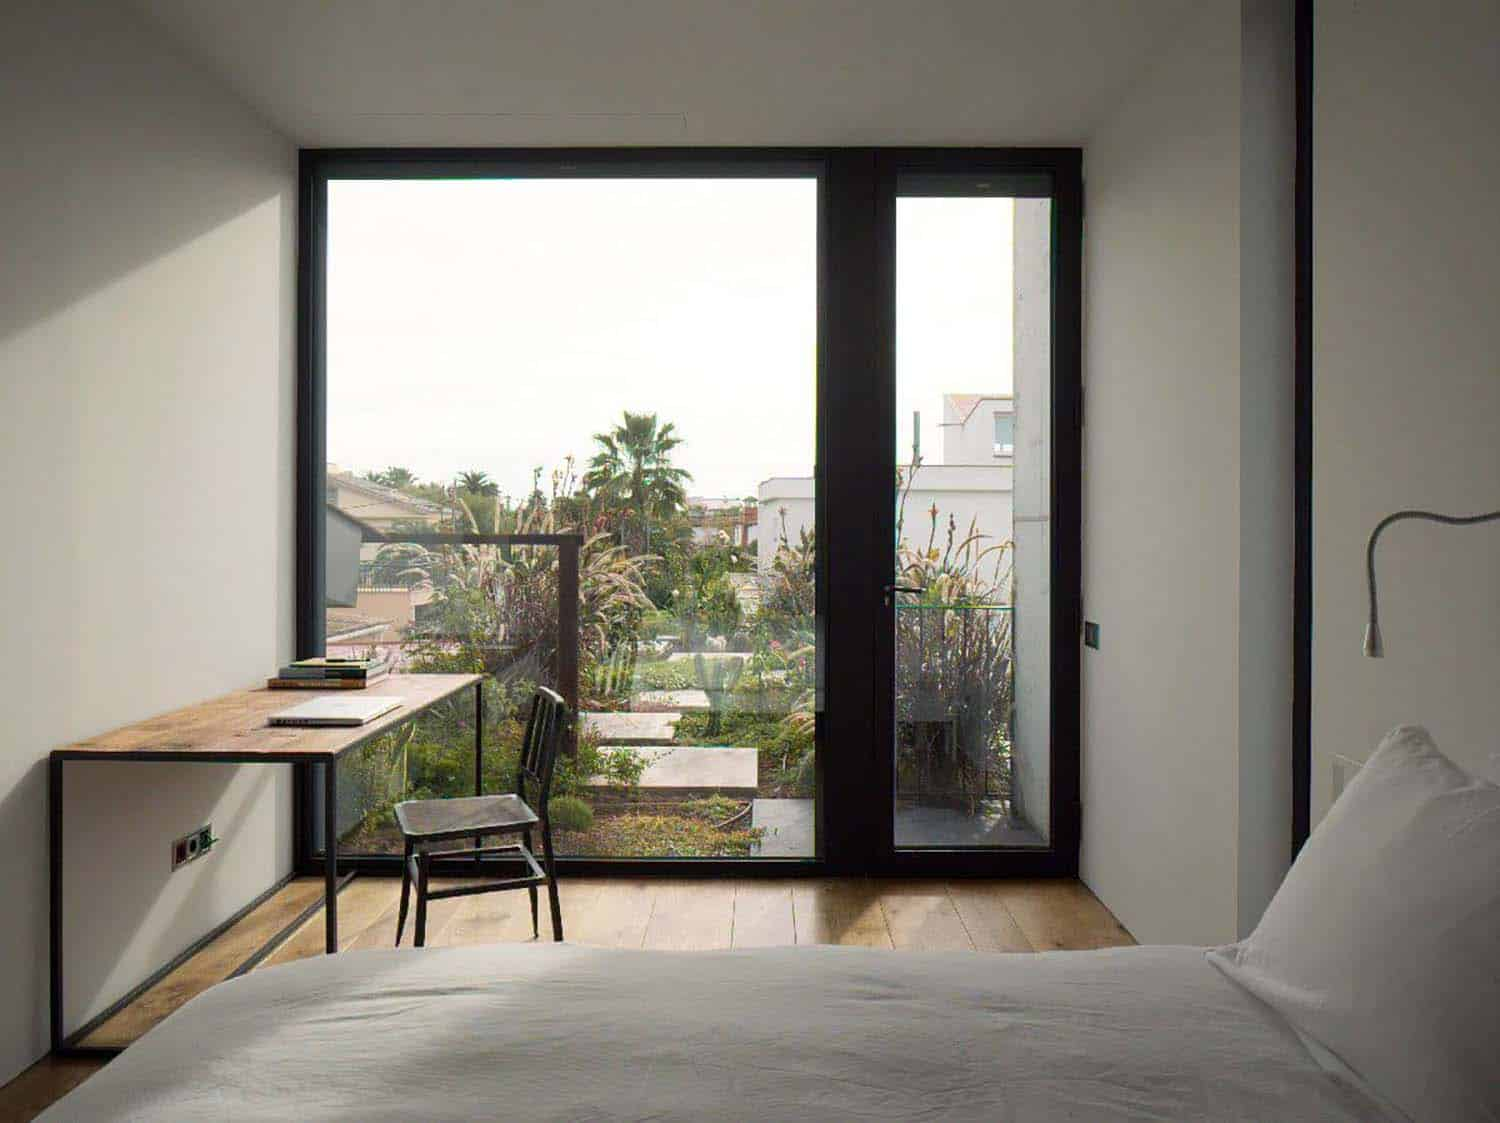 Studio Sitges-Olson Kundig Architects-17-1 Kindesign